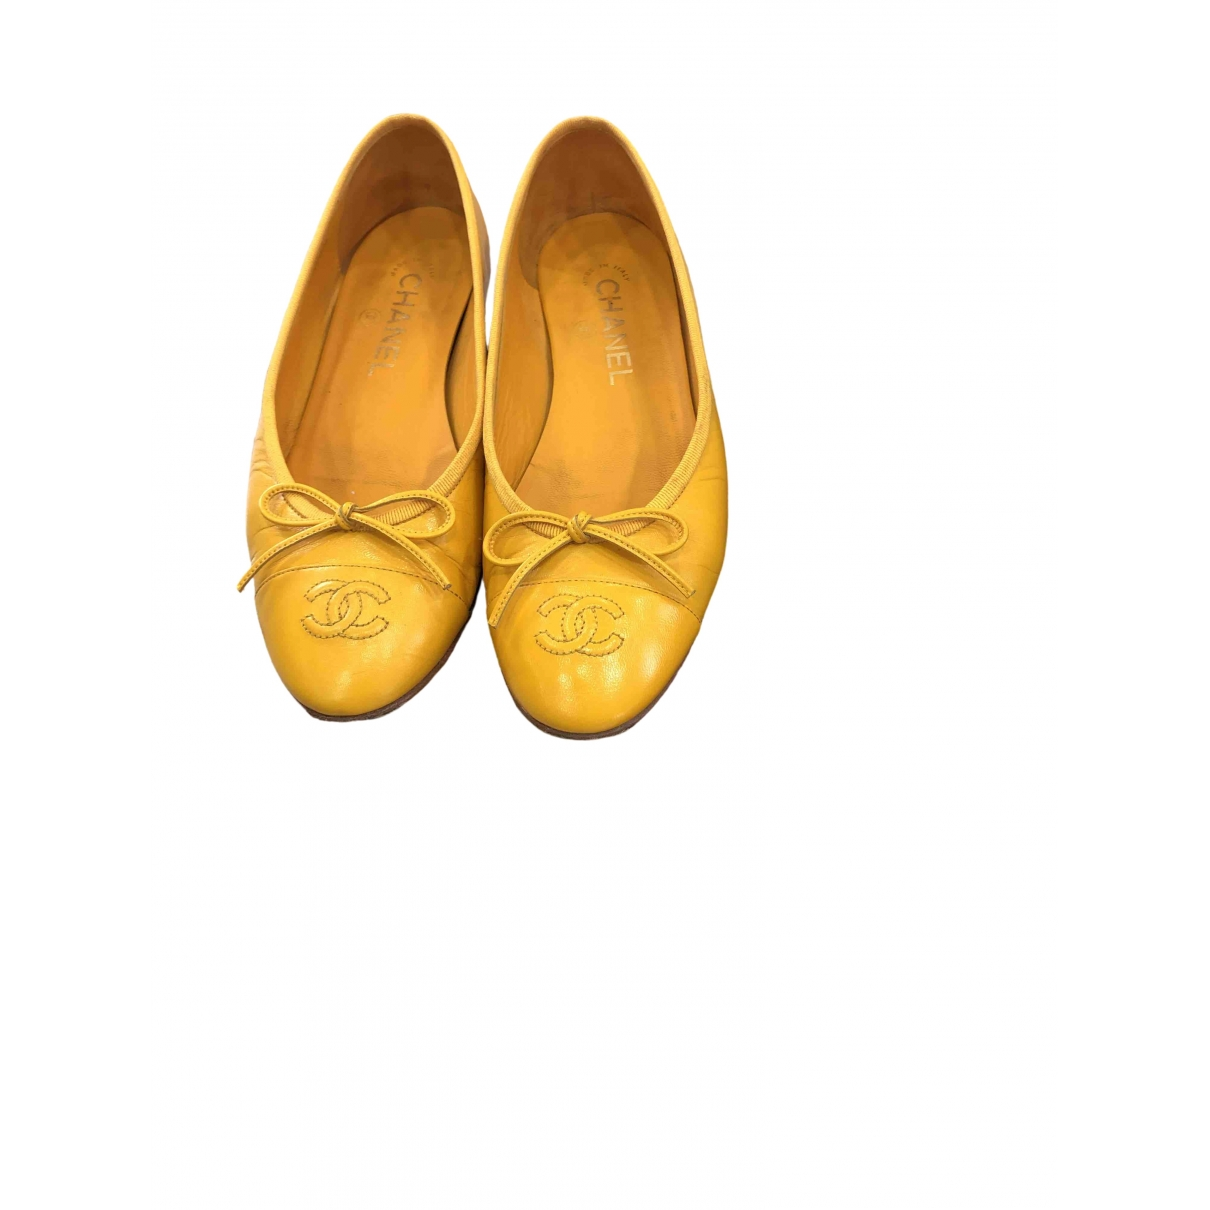 Chanel \N Yellow Leather Ballet flats for Women 37.5 EU